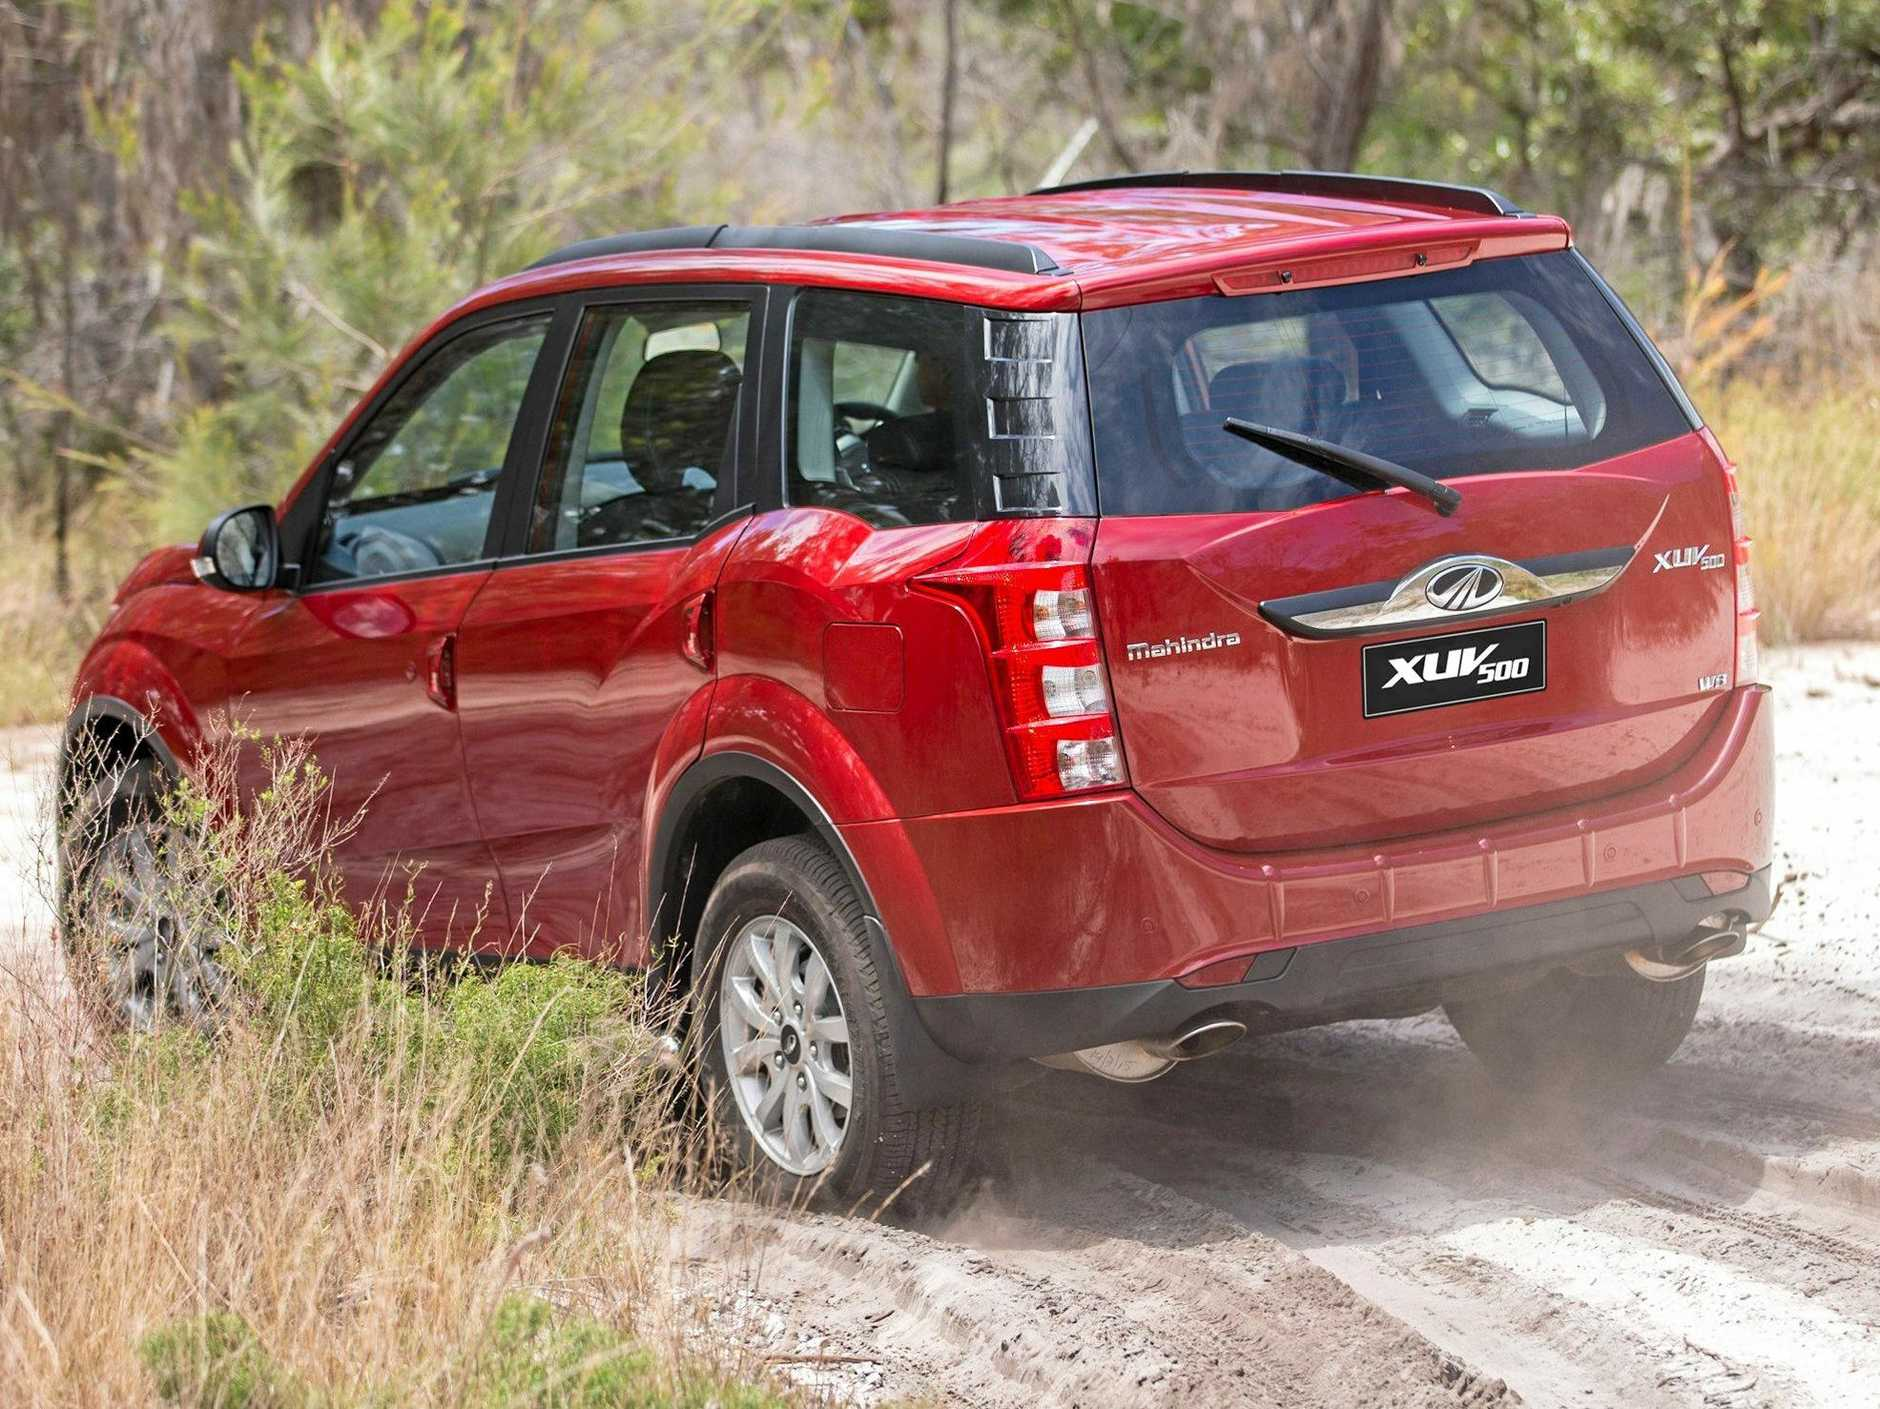 Mahindra's new petrol-powered XUV500 large SUV is Australia's cheapest seven-seater, starting from $25,990 drive-away.